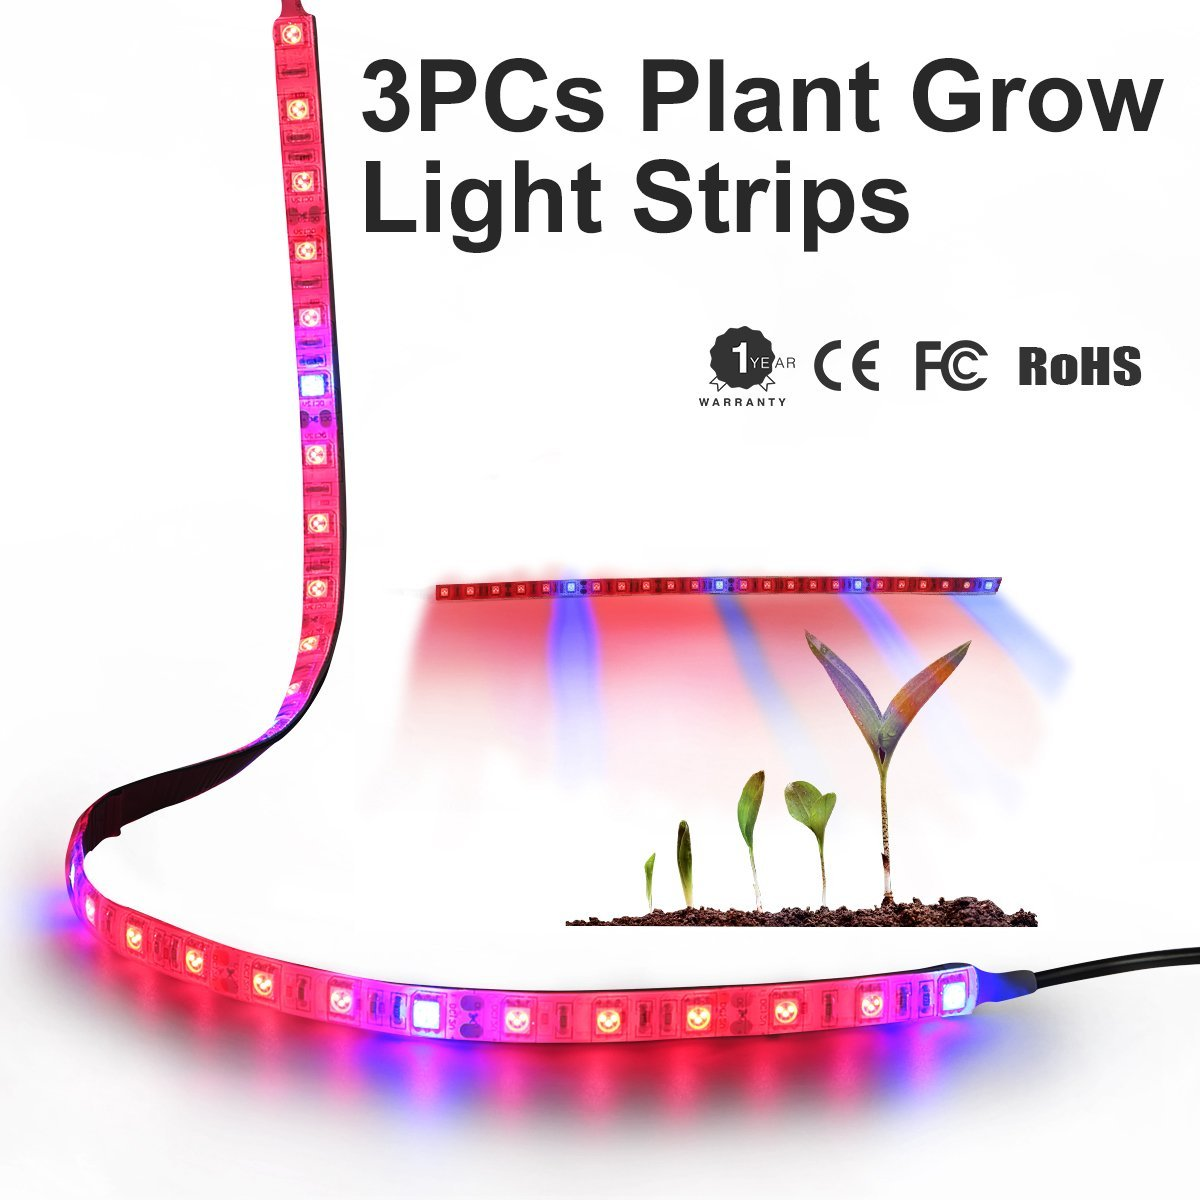 Plant Grow Strip Light LED Grow Light, 3Pcs 1.64ft Flexible Soft Plant Grow Bar Light, IP65 Waterproof 5050 SMD Red Blue 5:1 Growing Lamp with 2A Power Adapter for Indoor Plants,Greenhouse,Hydroponics